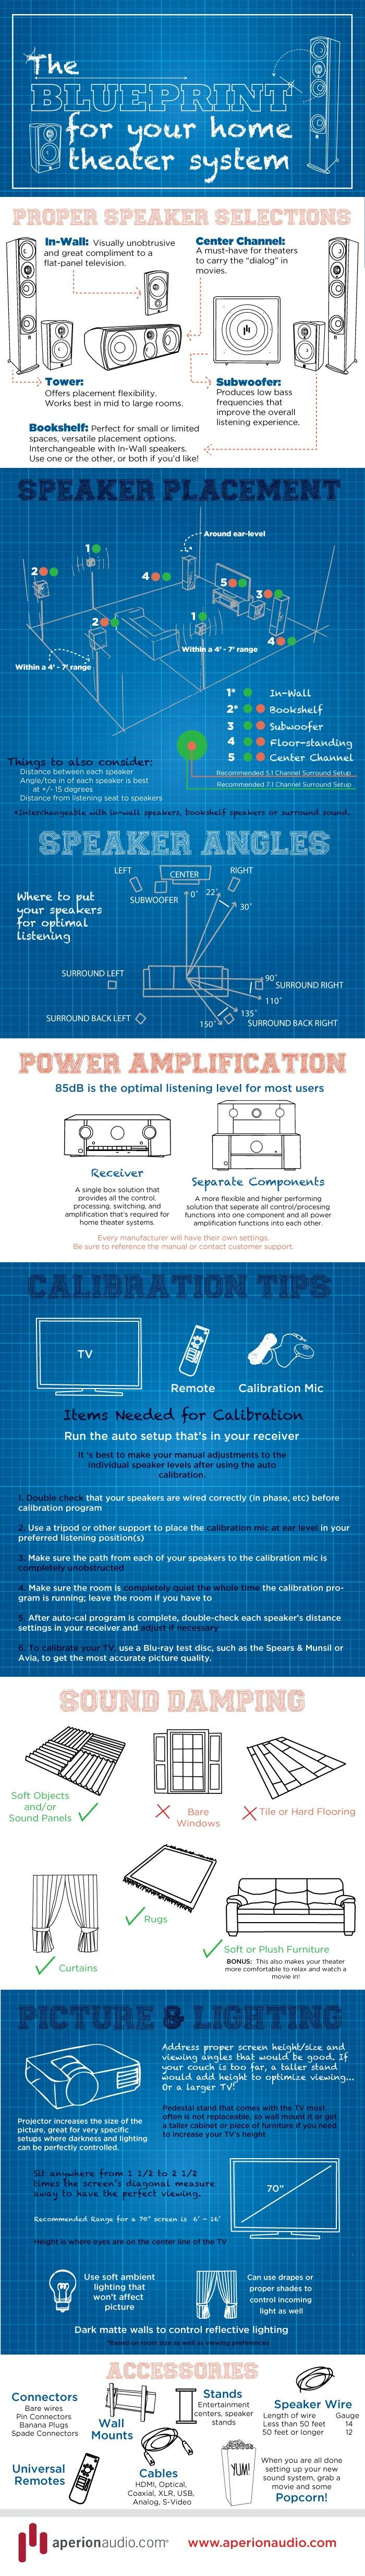 Setting up the perfect home theater isn't easy. Should you buy a projector or an LCD LED TV? What about plasma? Which receiver do you need? This infograph by Aperion Audio takes you through it step-by-step.